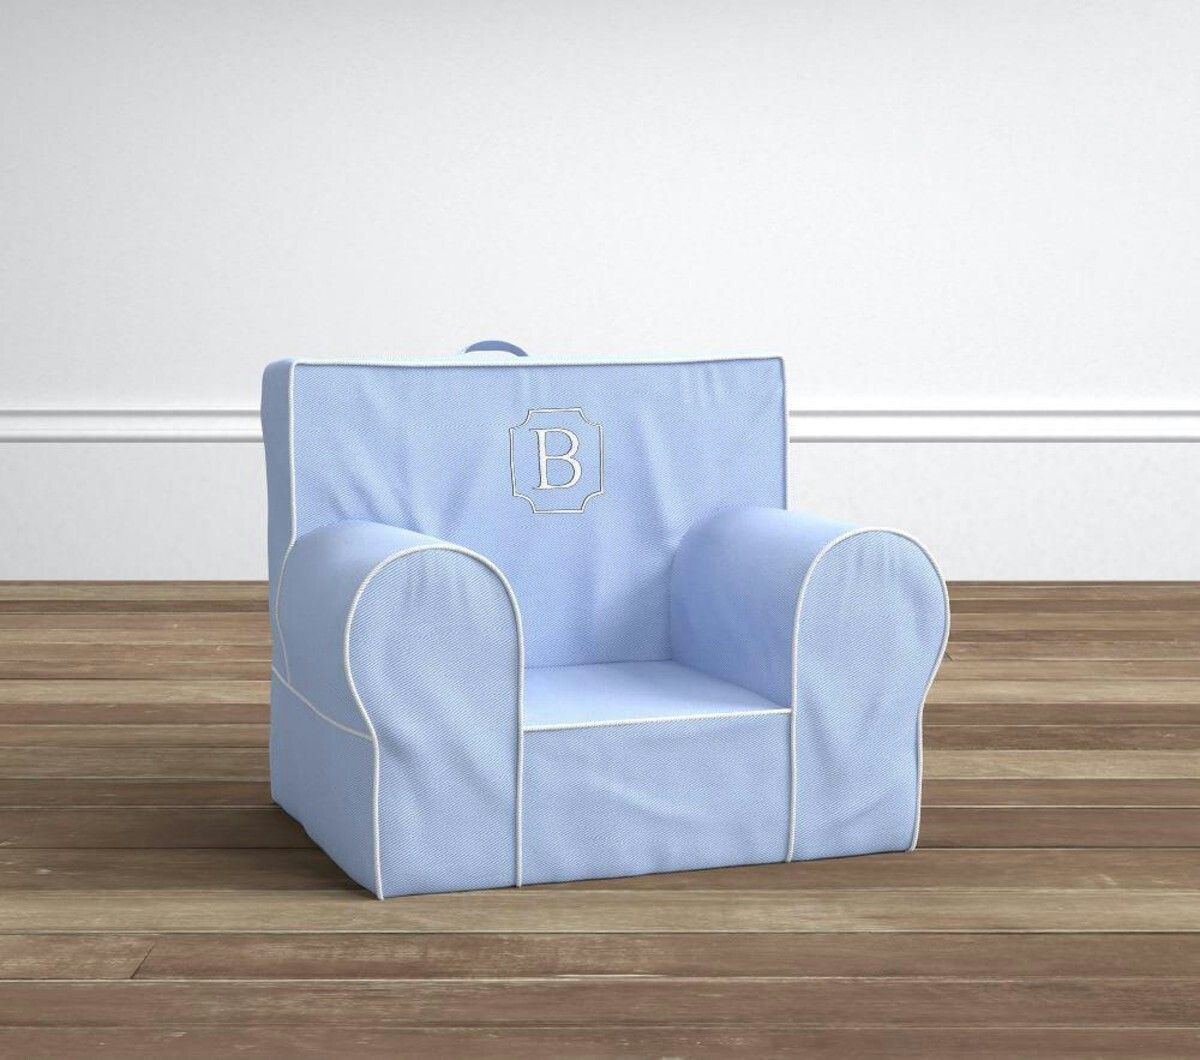 Pottery barn kids chair Kids lounge chair, Toddler